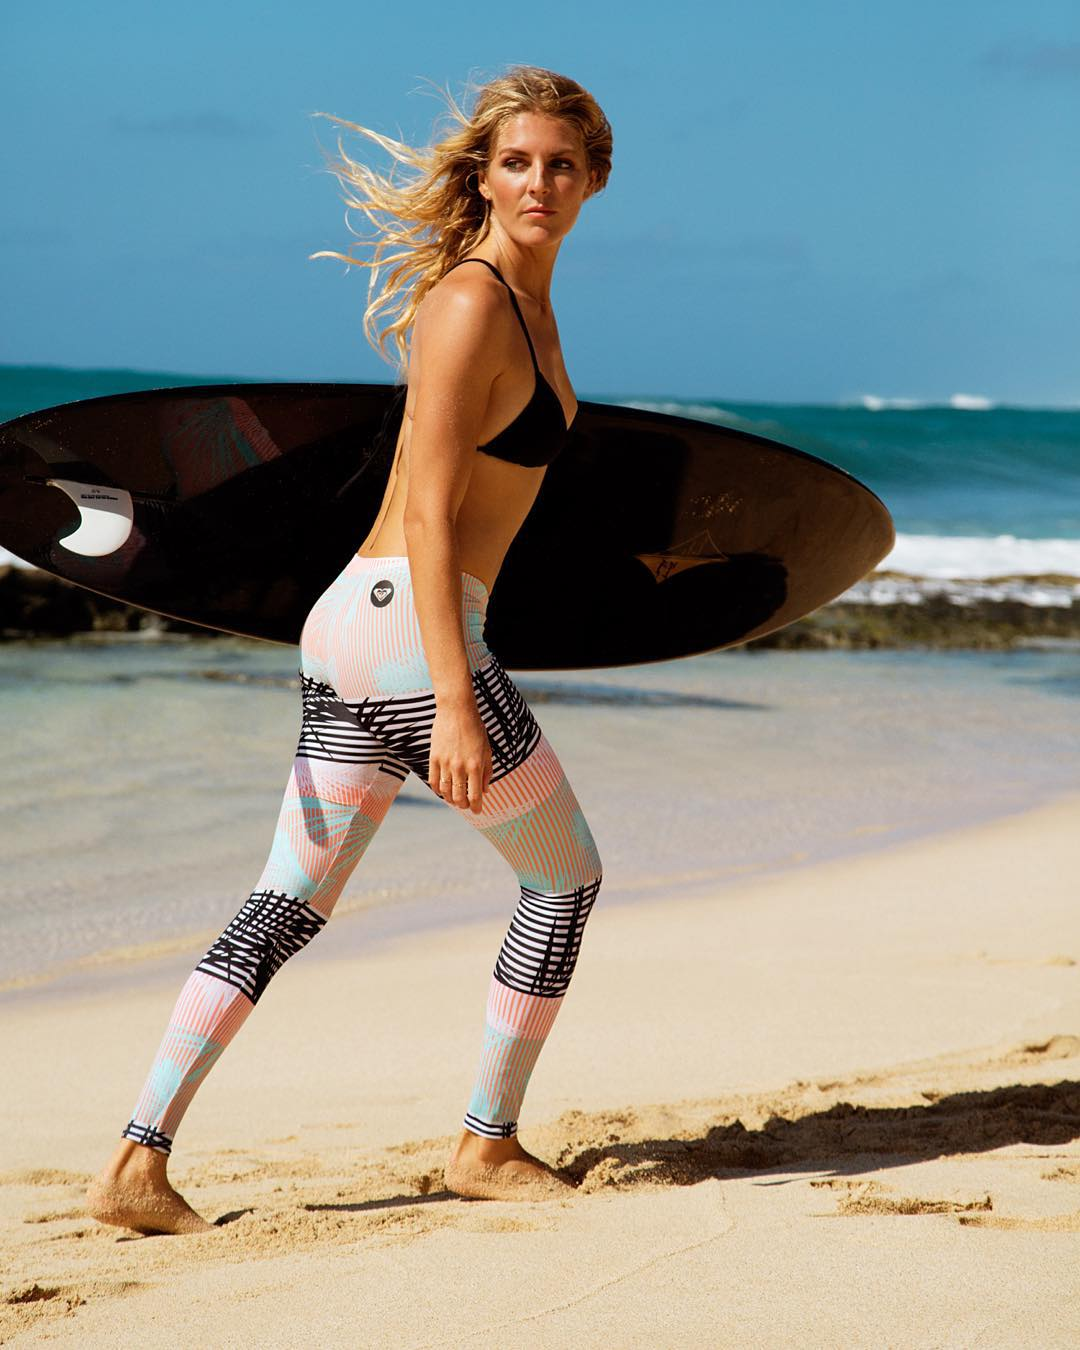 Take a walk on the wild side #POPsurf @stephaniegilmore